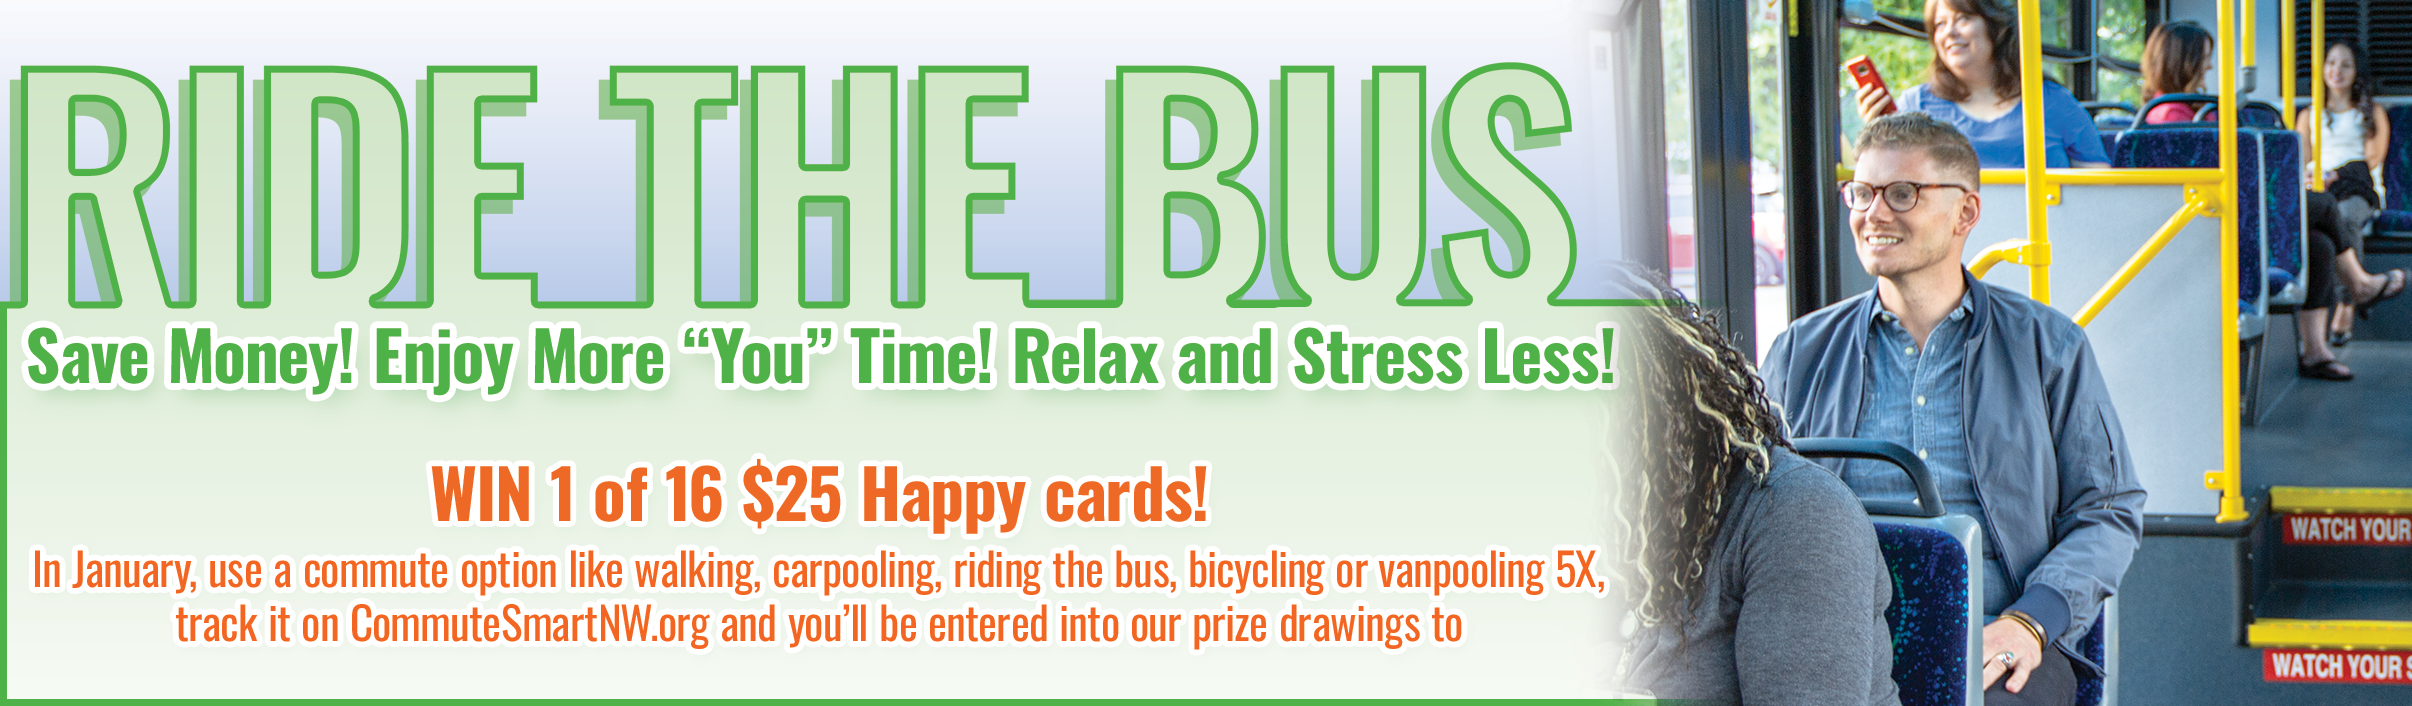 Ride the bus this January!